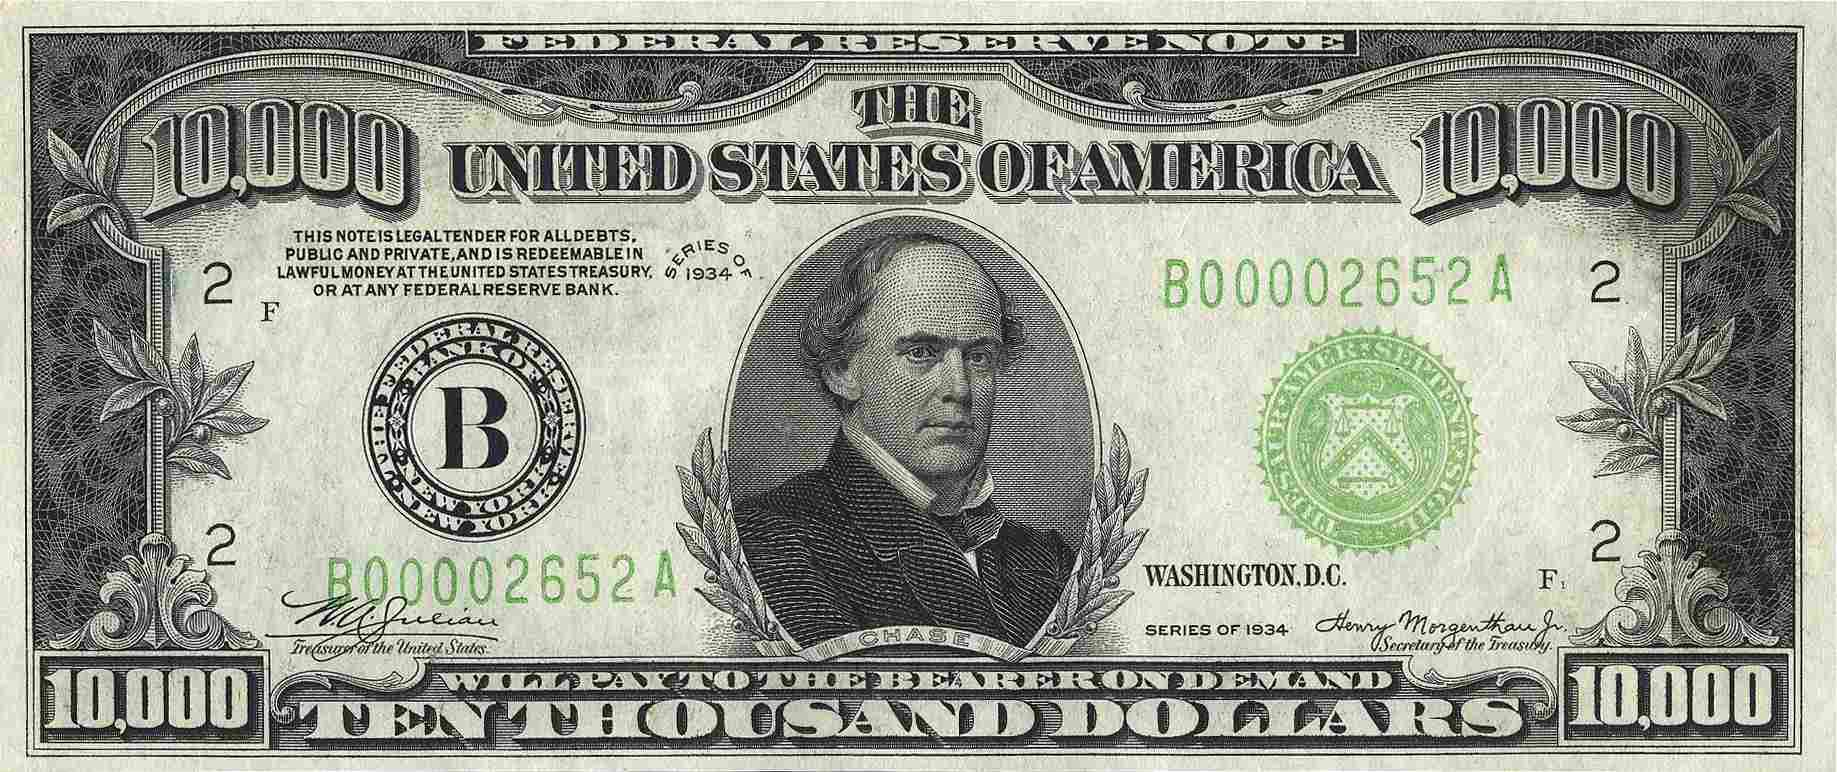 Faces On Every U S Bill